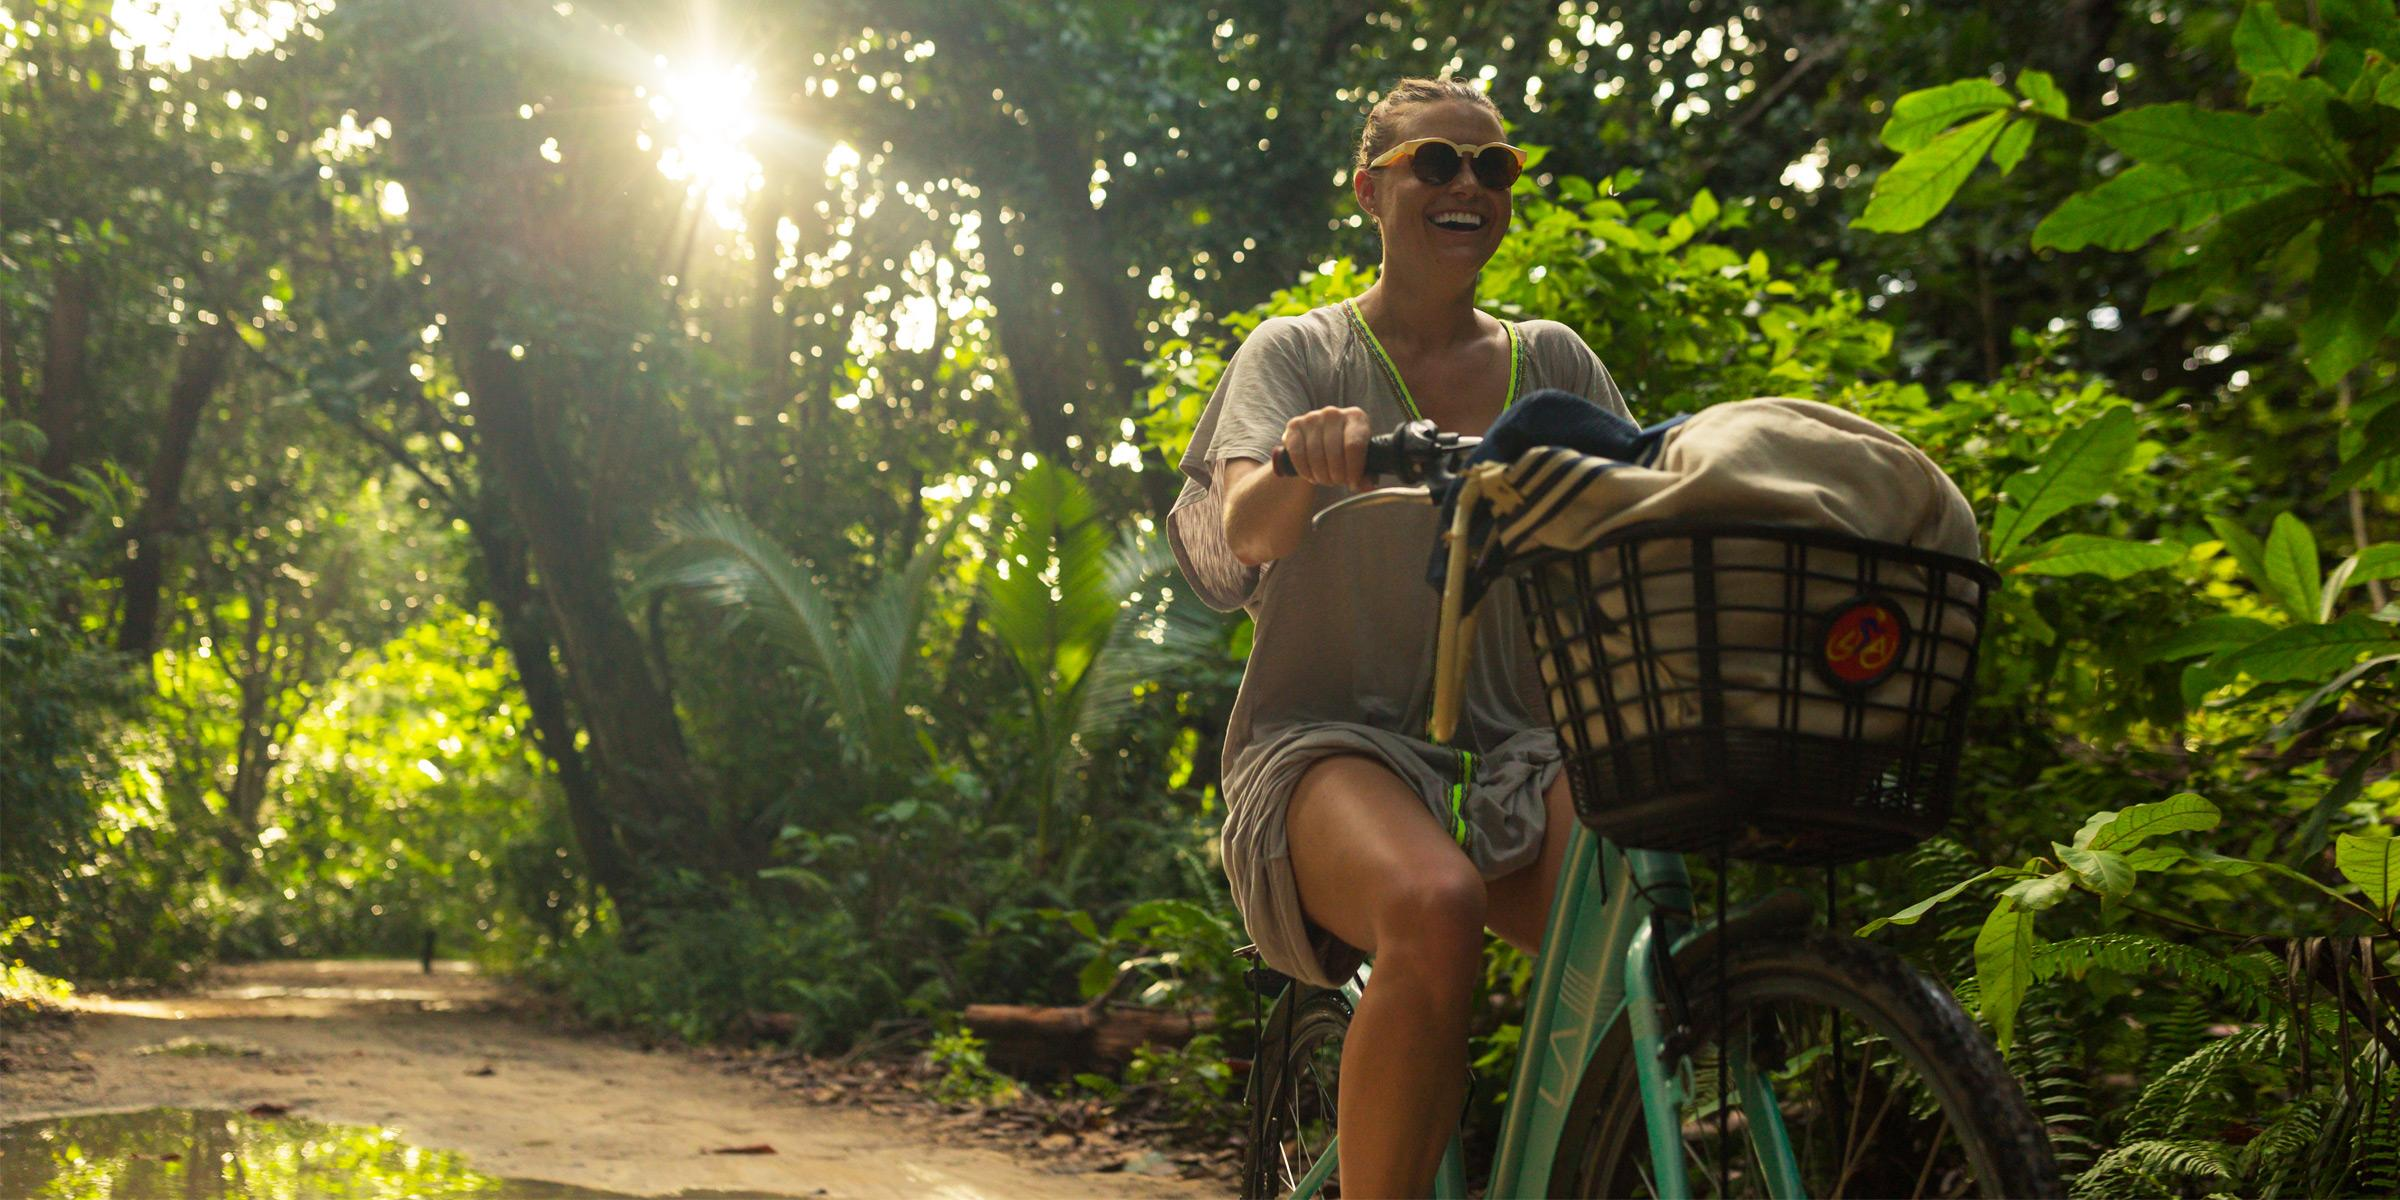 seychelles_woman_bike_bicycle_la_digue_2400x1200_web.jpg